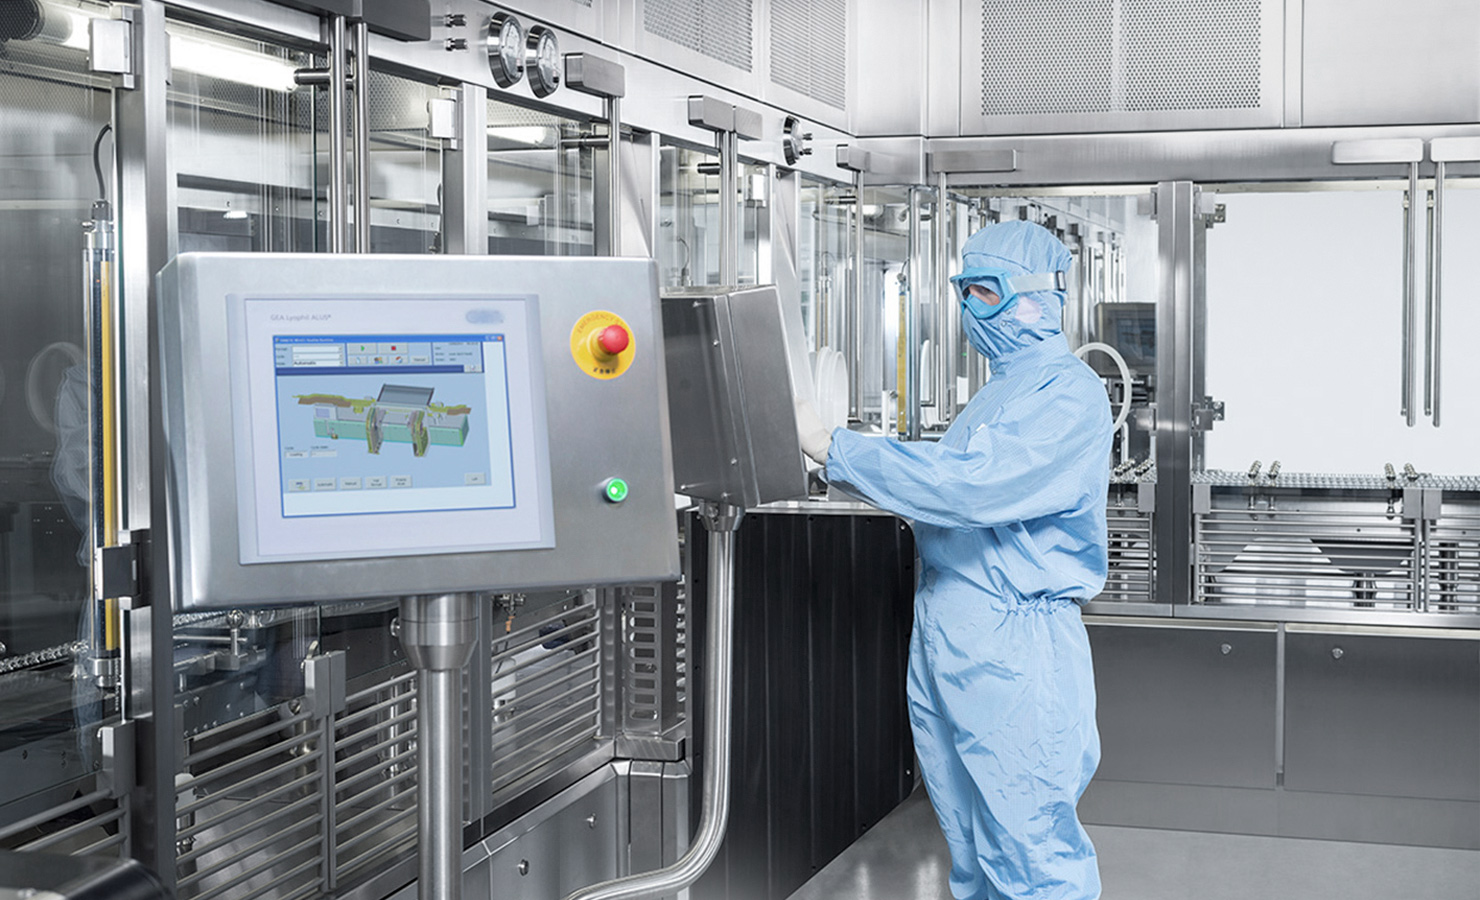 SKAN's RABS is used in cleanrooms and GMP compliant to guarantee the safety of the user